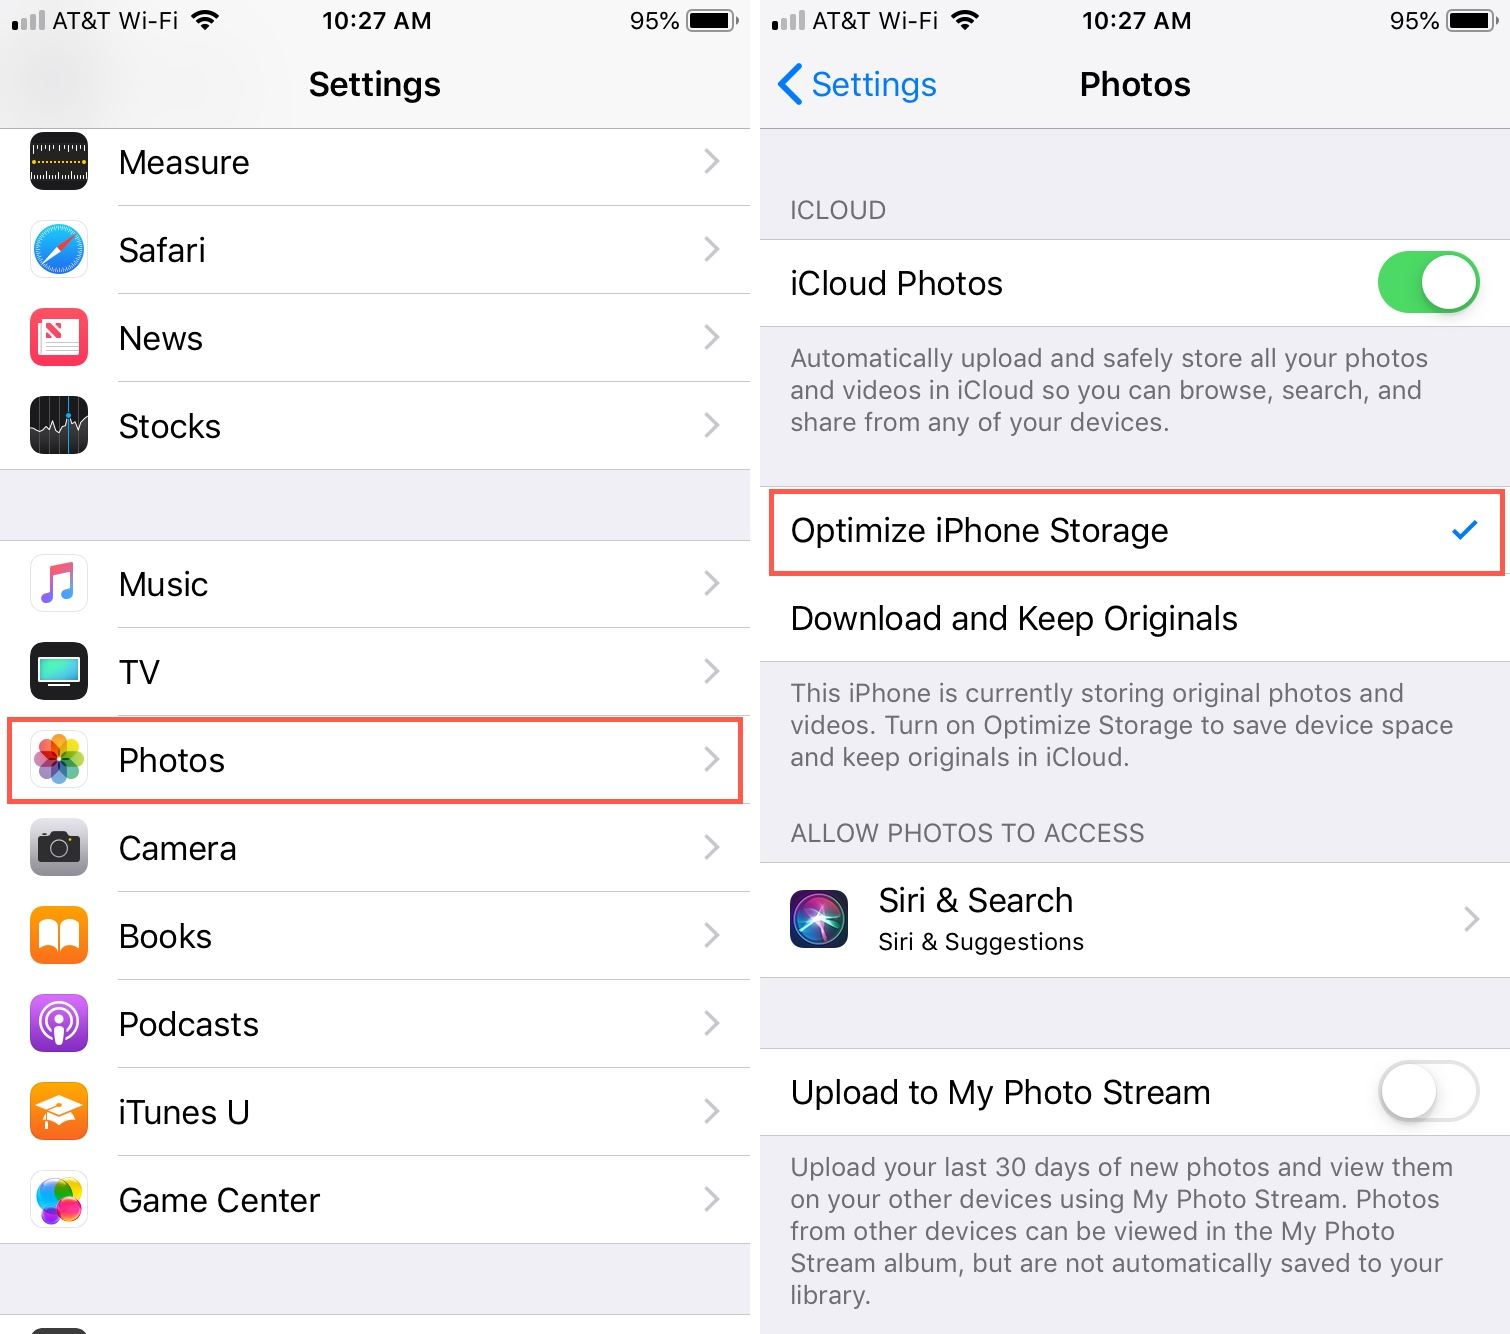 iPhone Optimize Storage for Photos